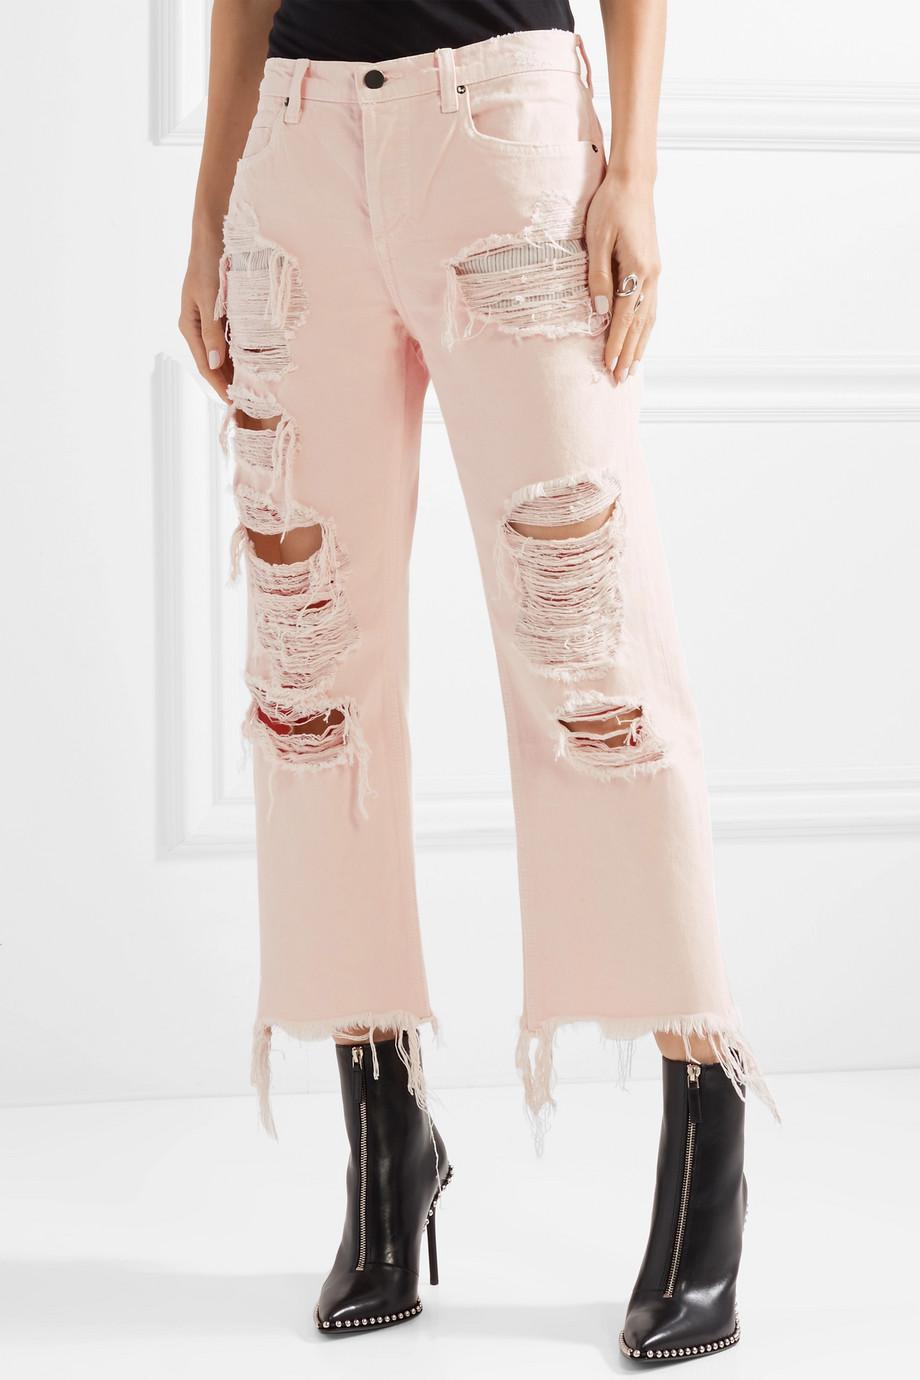 Free Shipping How Much Factory Price Rival Cropped Distressed High-rise Straight-leg Jeans - Baby pink Alexander Wang Sale Order Low Price Fee Shipping For Sale Cheap Online Store 5lwLZKra